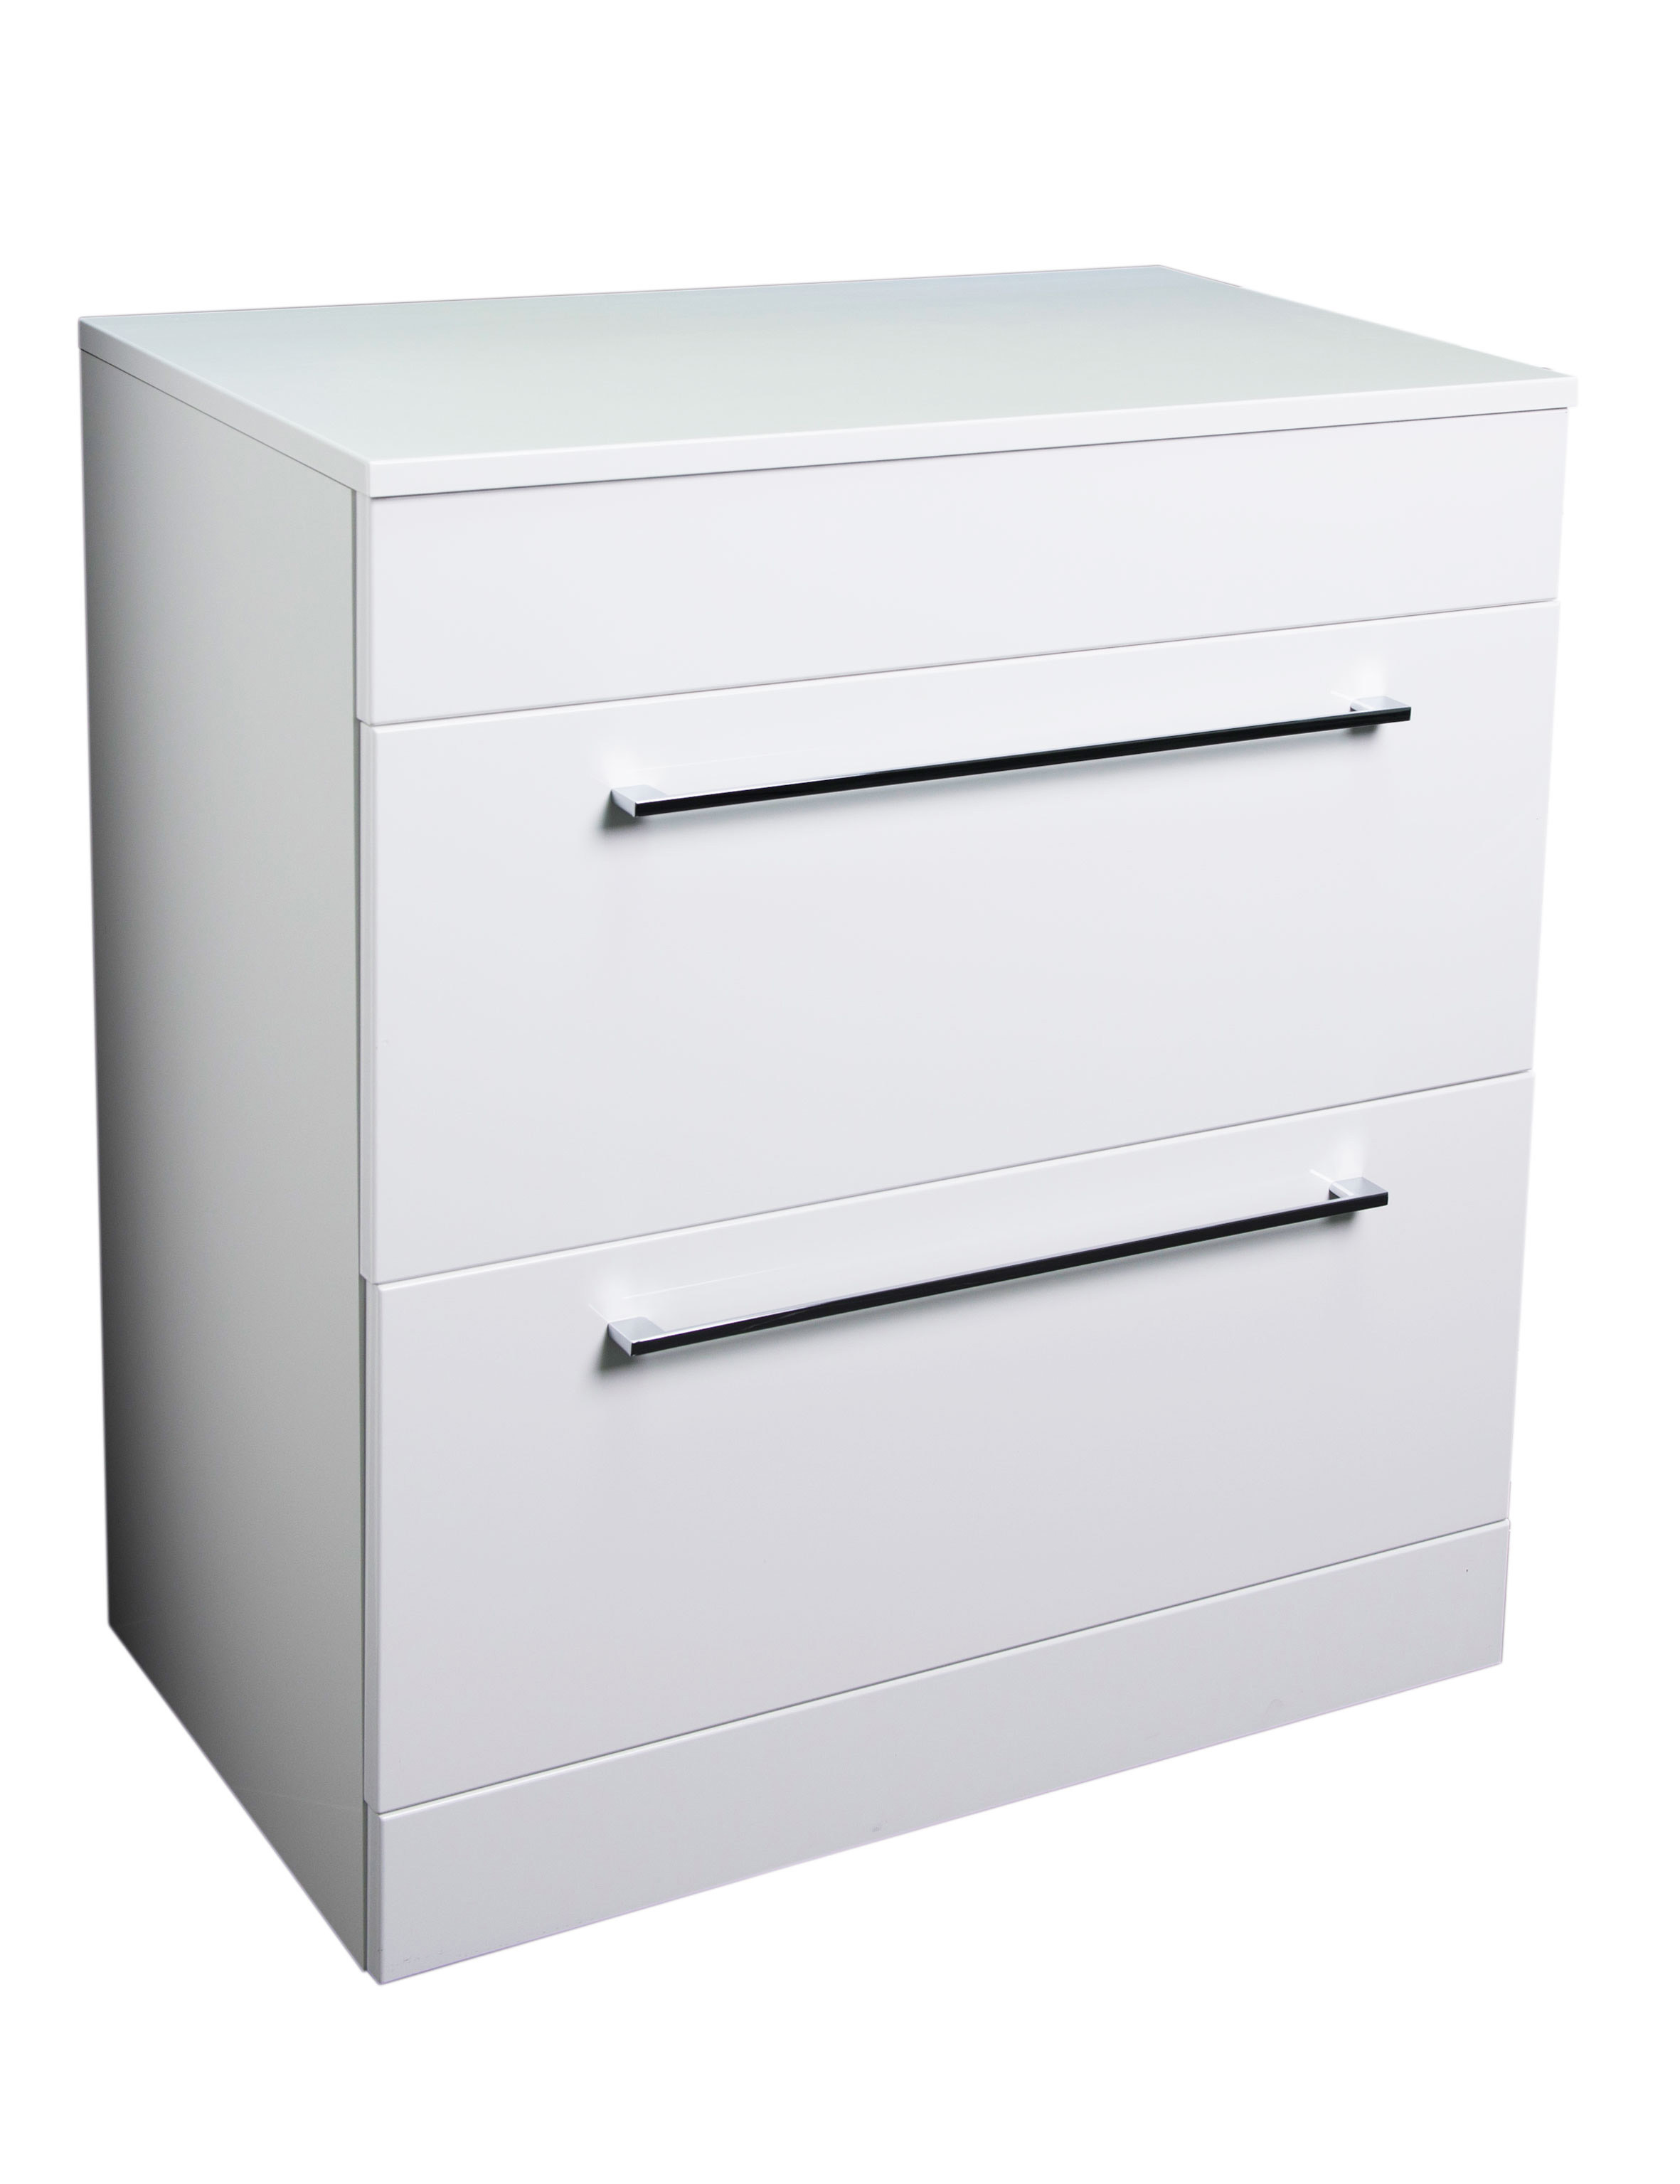 Napoli Gloss White 2 Drawer 800 Unit & Top